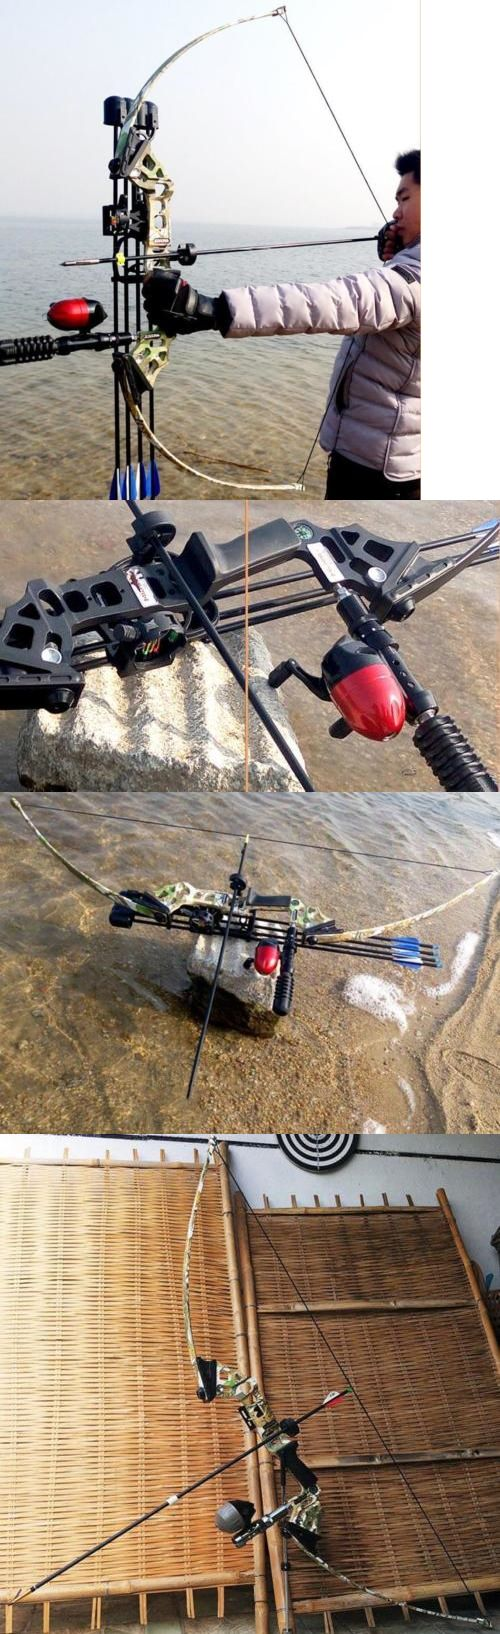 Recurve 20839: Fishing Reel Takedown Recurve Bow Archery Hunting Fish 40Lbs Bowfishing Kit Camo -> BUY IT NOW ONLY: $115.88 on eBay!